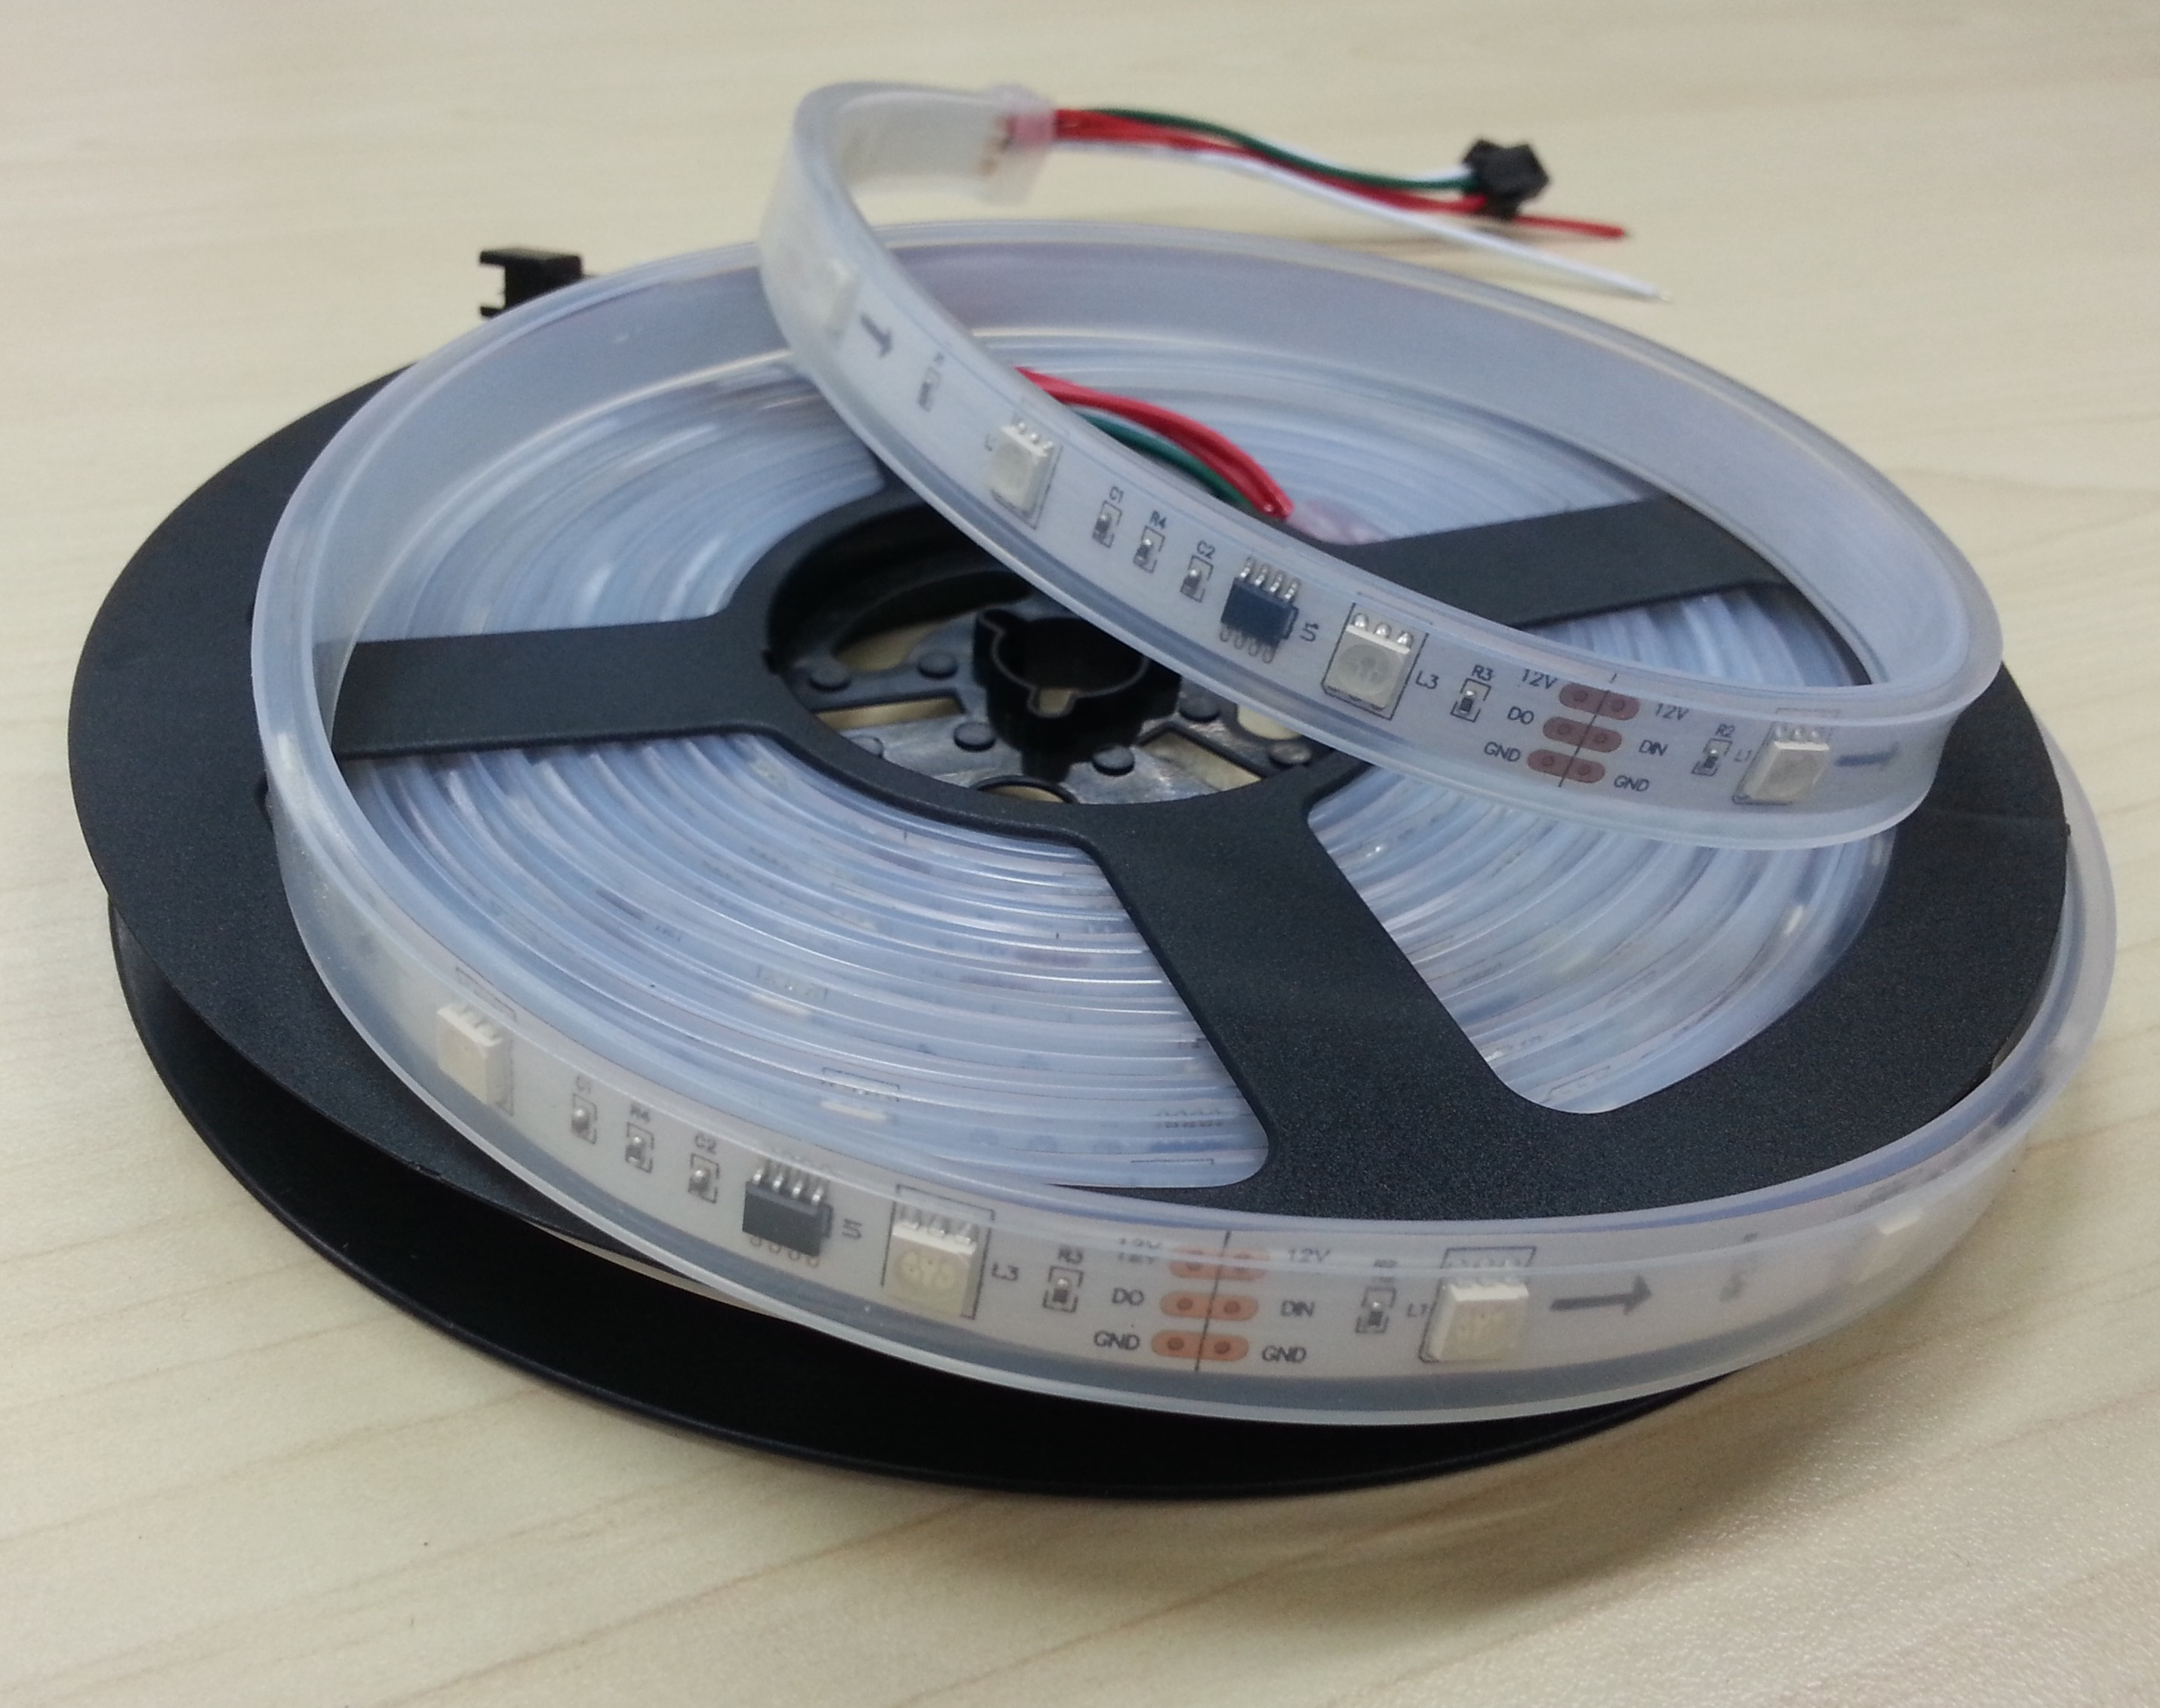 dc12v_WS2811_addressable_rgb_led_strip_5m_150LEDs_2811_Light